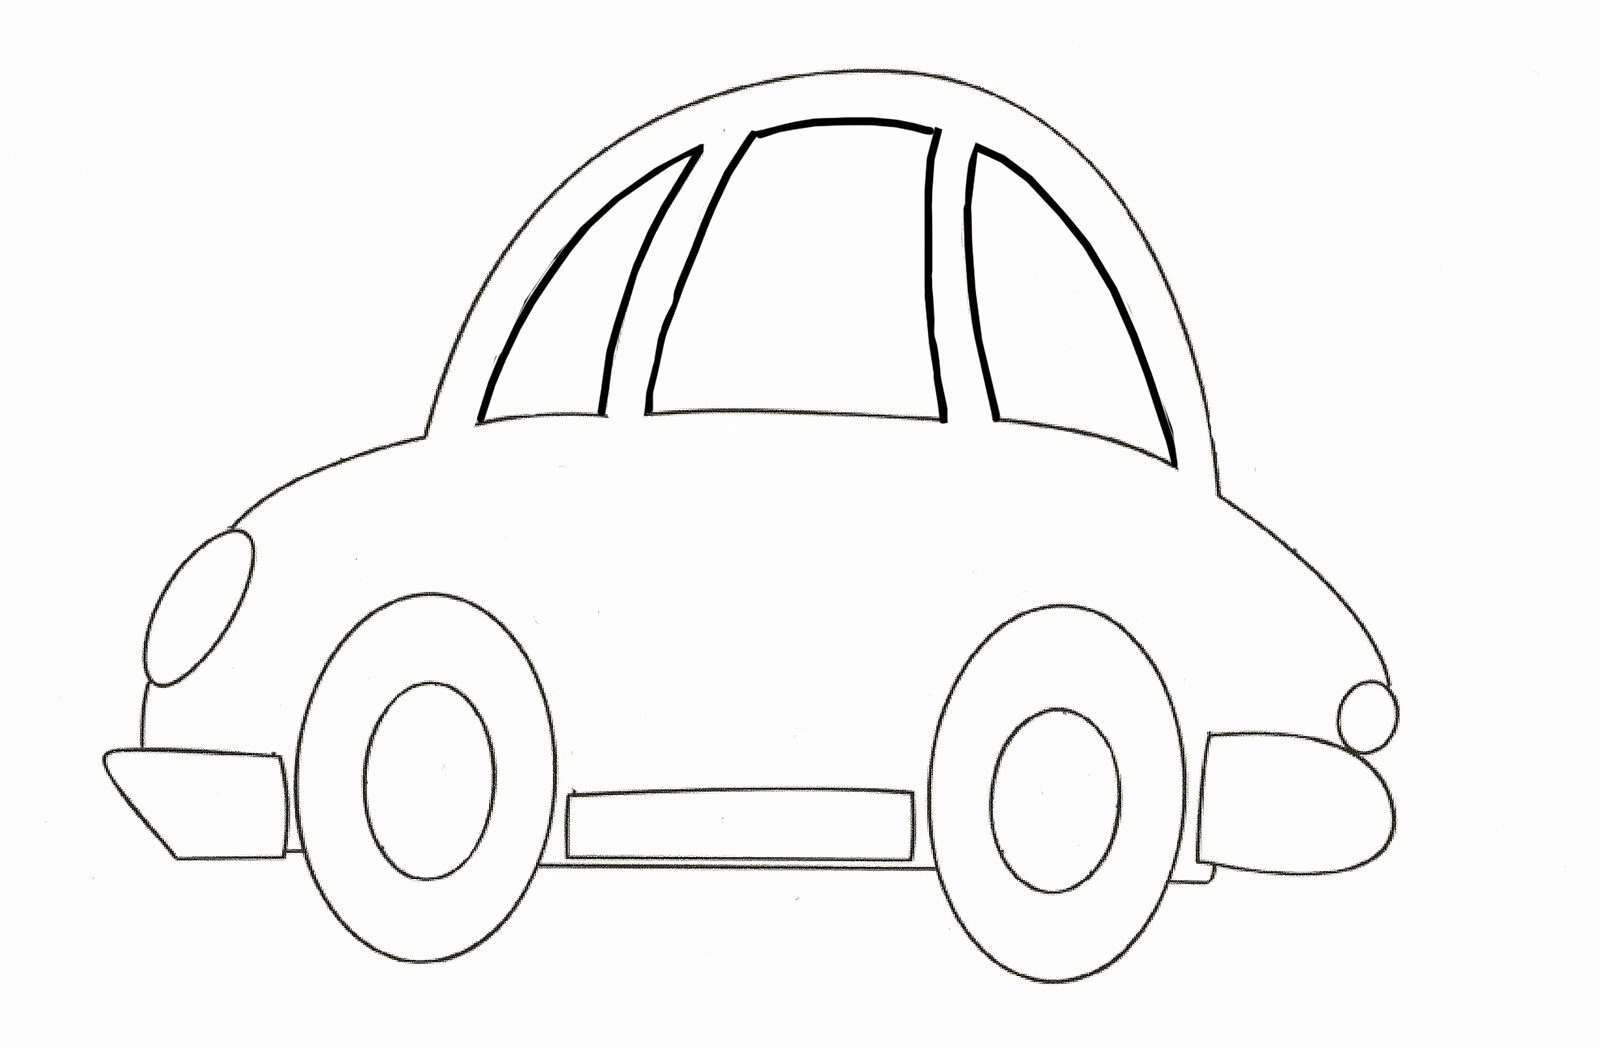 Car Cut Out Template Awesome 6 Best Of Car Template Printable for Kids Car